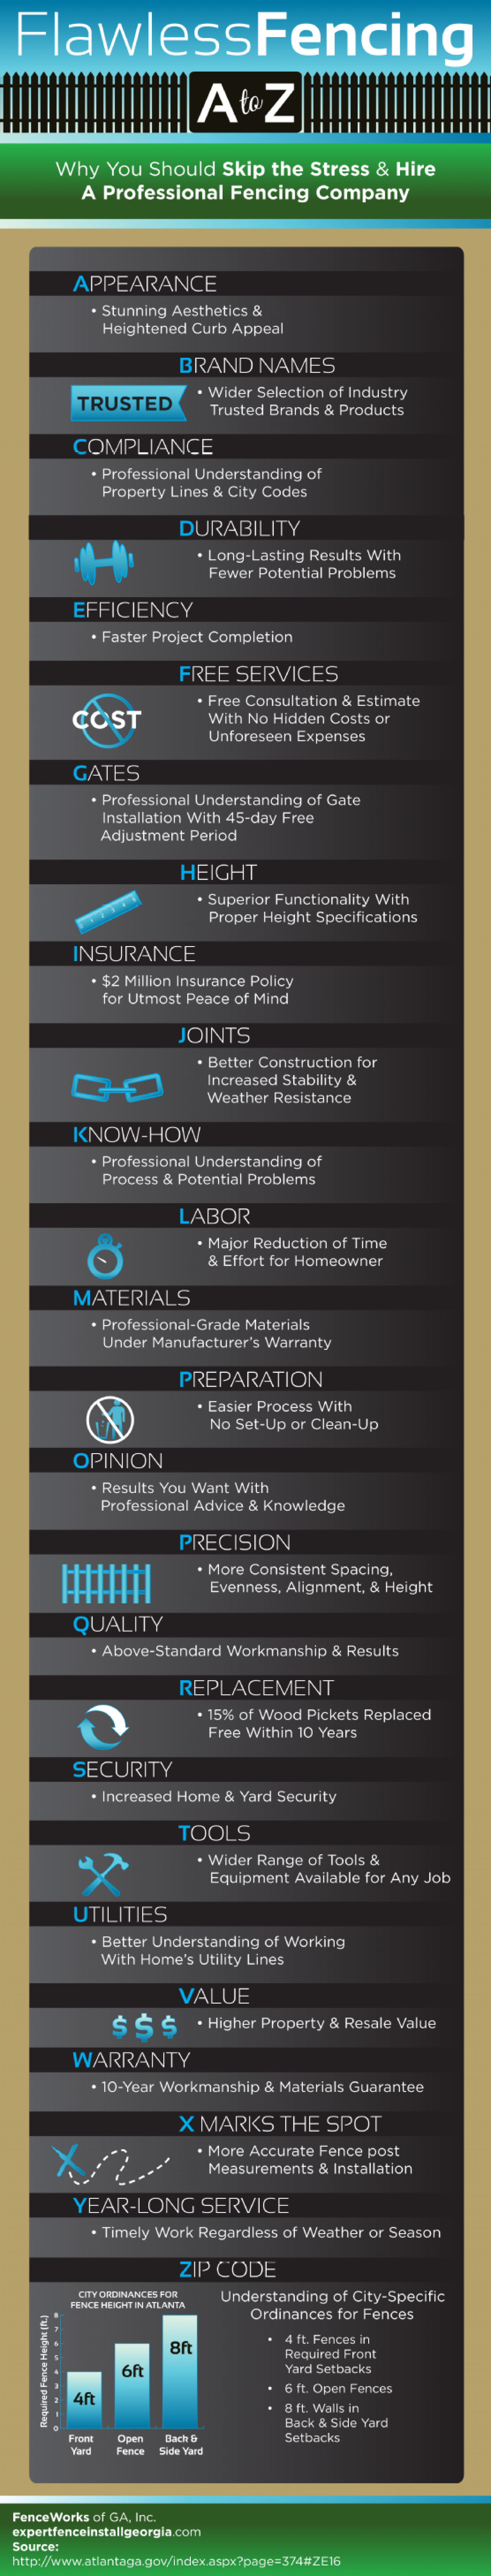 Flawless Fencing from A to Z: Why You Should Skip the Stress and Hire a Professional Fencing Company Infographic